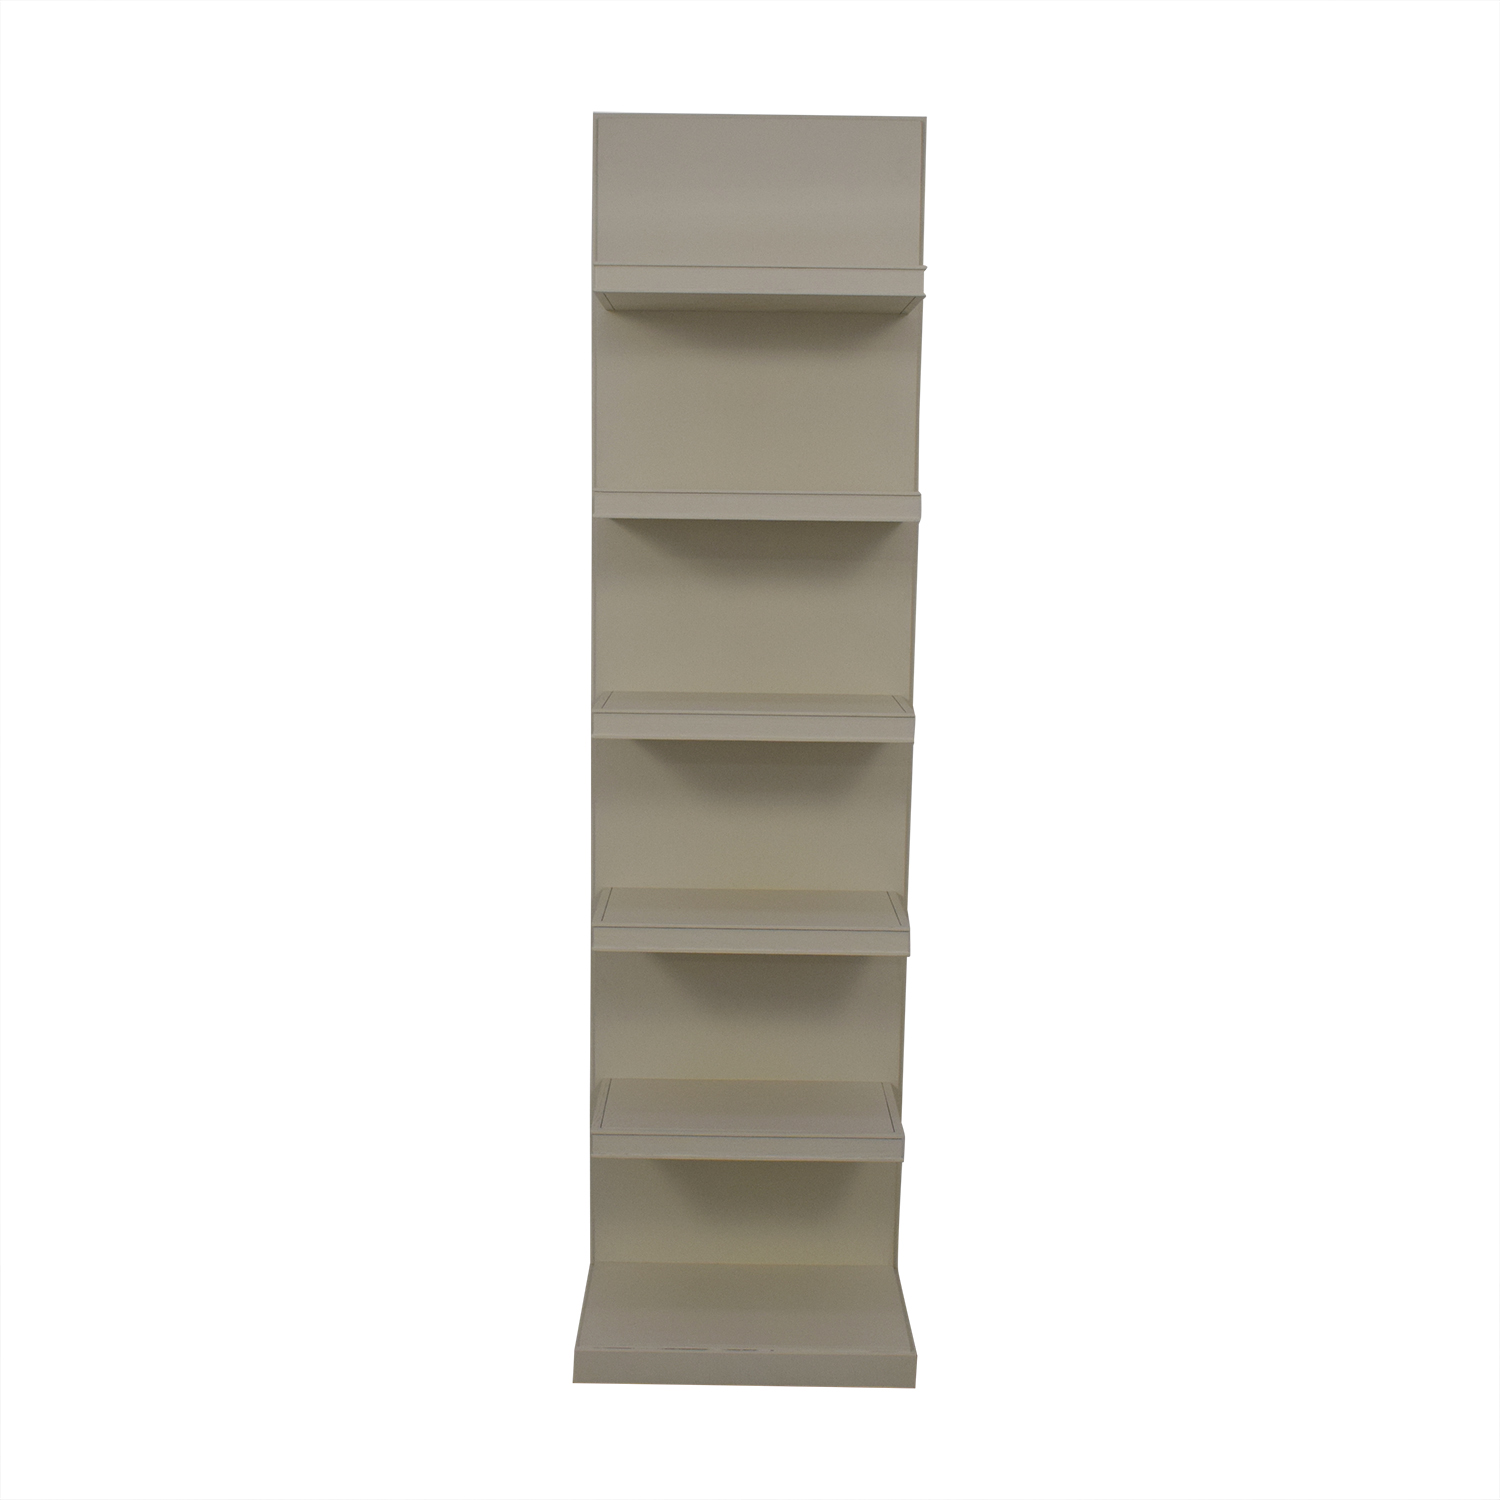 Vanguard Furniture Vanguard Furniture Bradshaw Etagere white